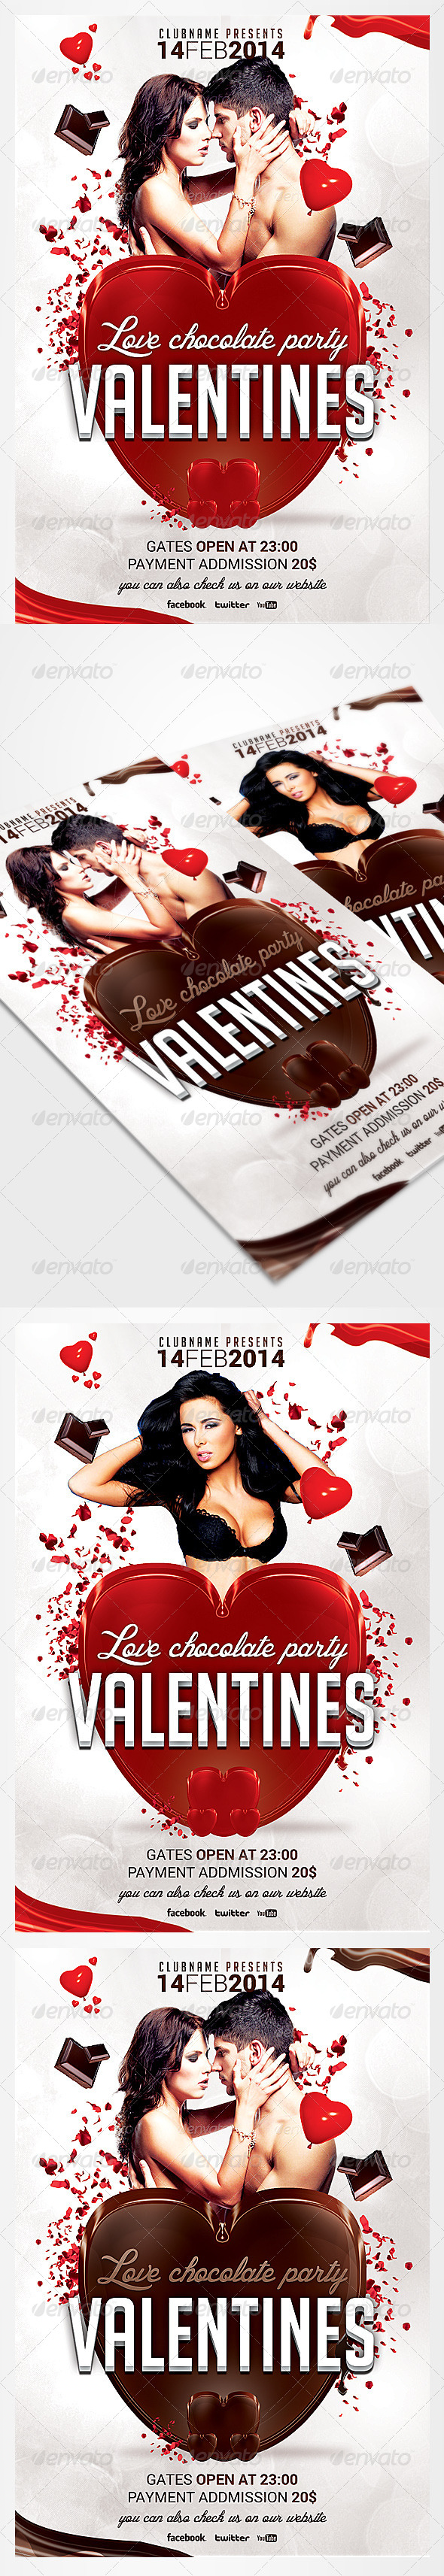 GraphicRiver Valentine s day flyer 6452842